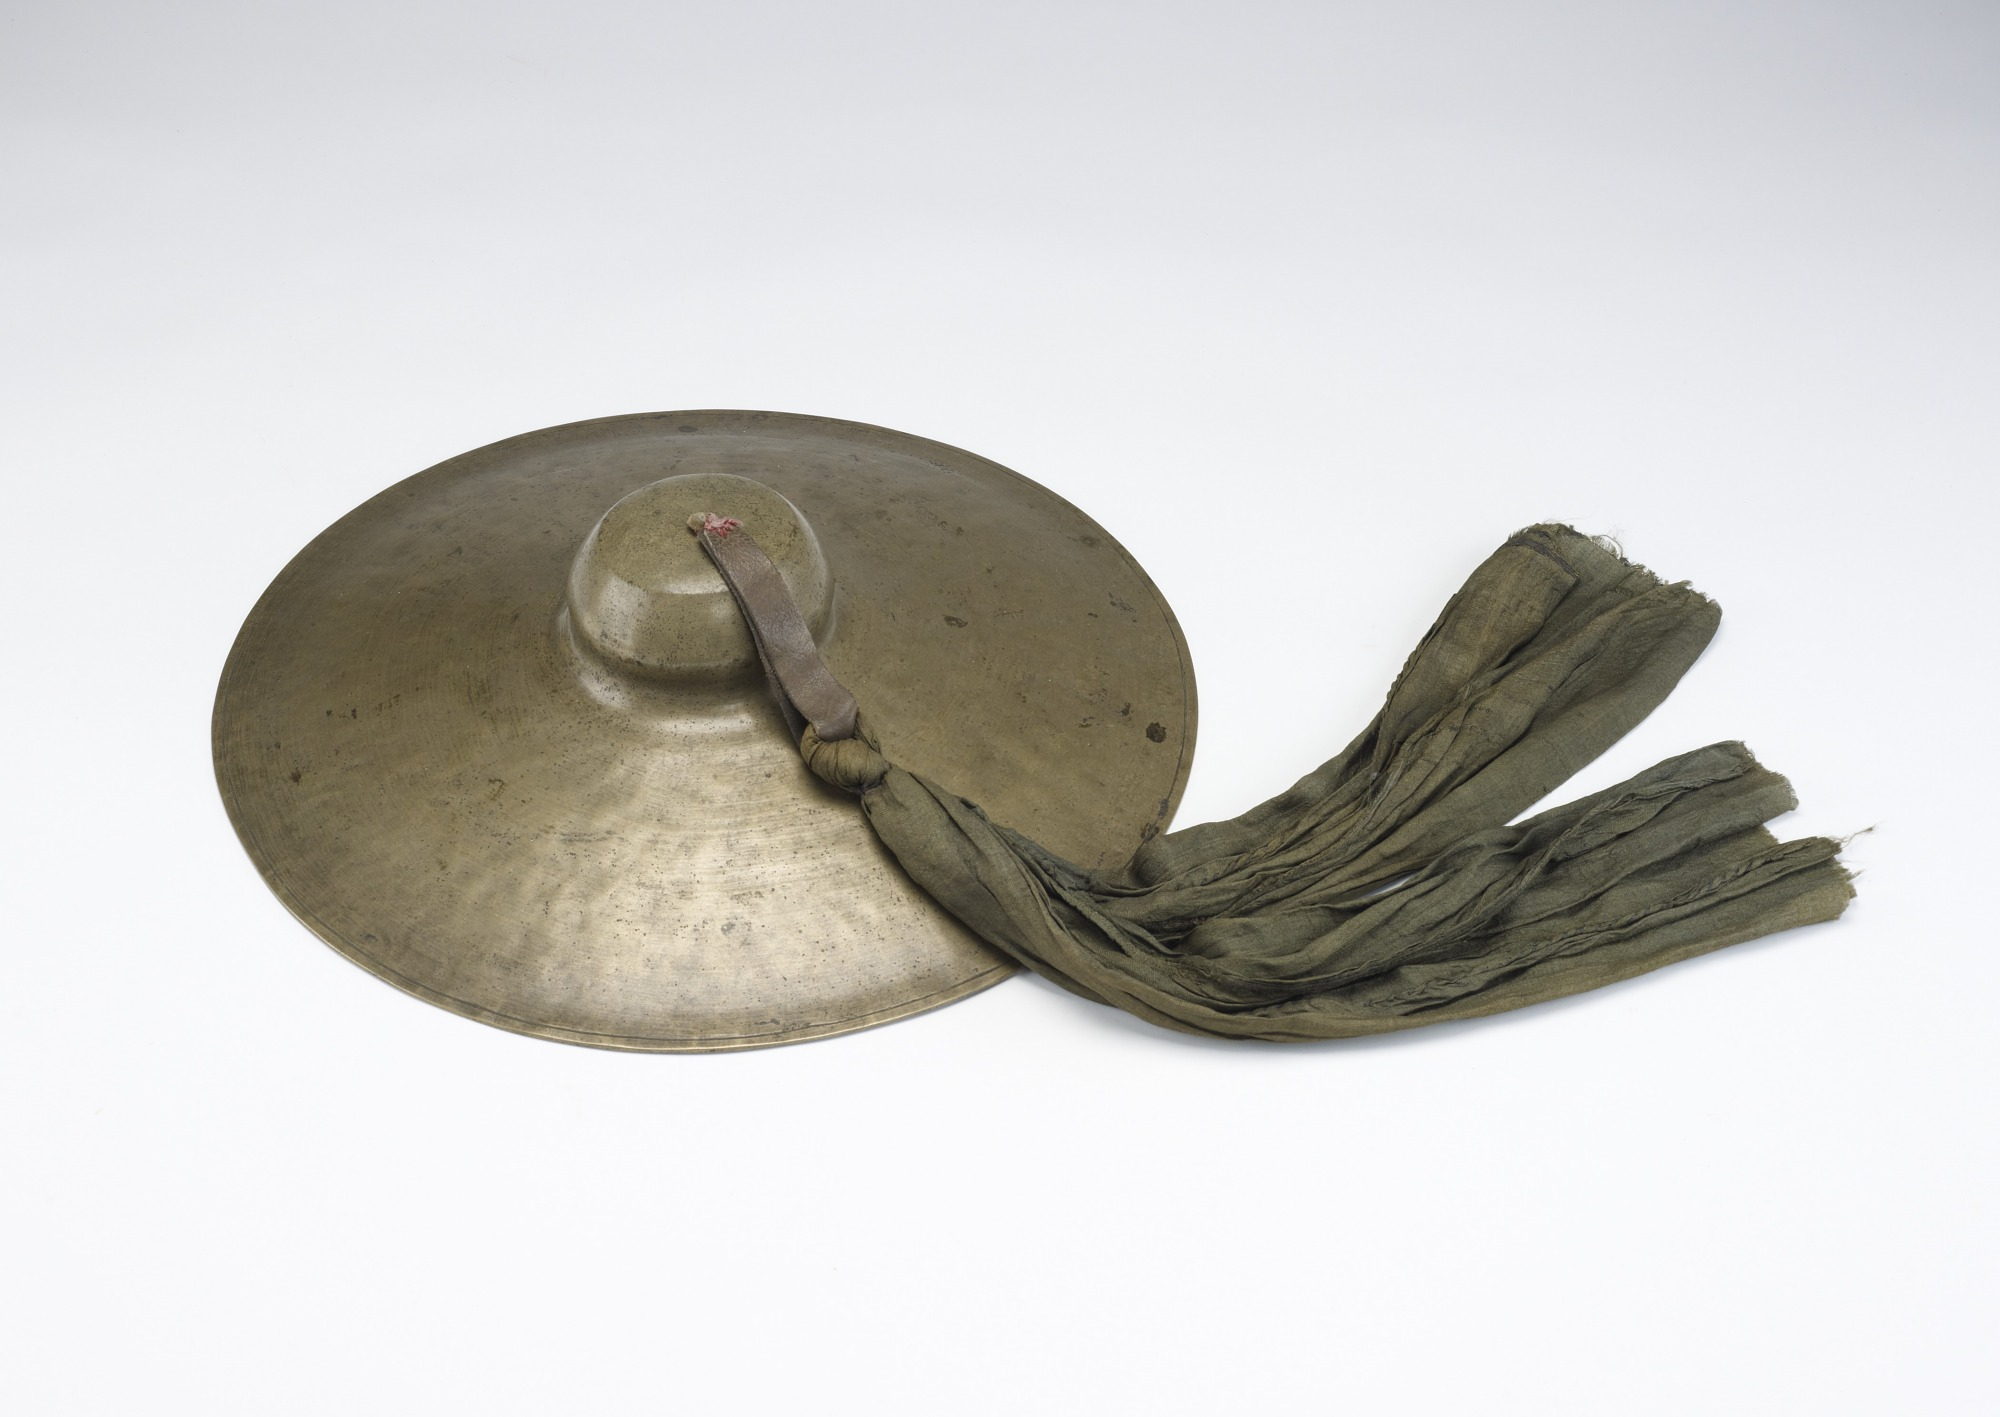 Pair of Large Cymbals with Carrying Case